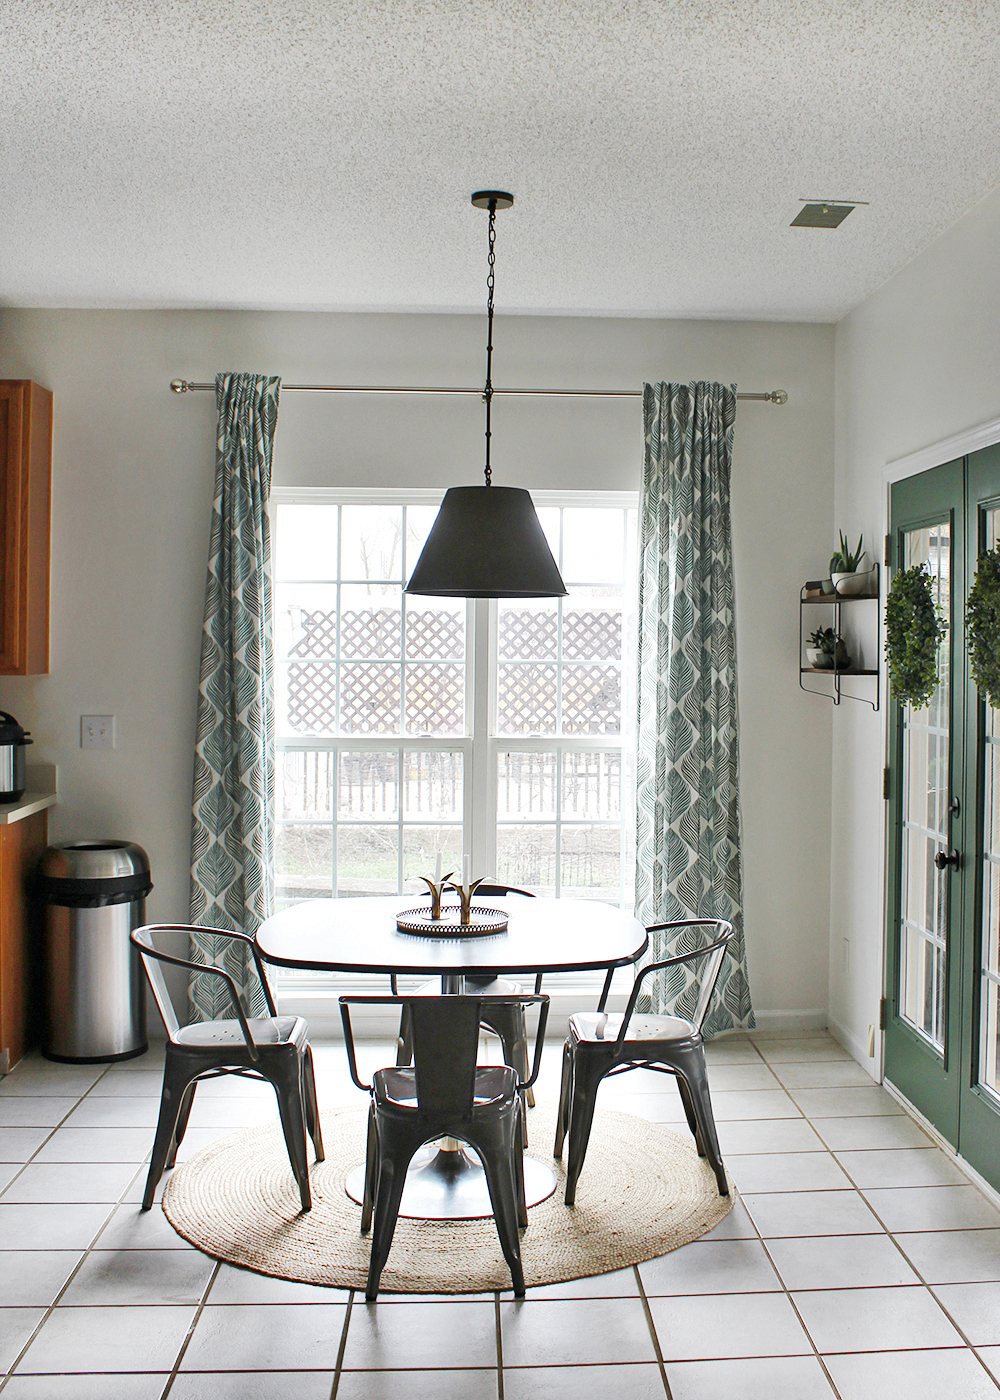 Global-Inspired breakfast nook on a small budget with green french door and jute rug